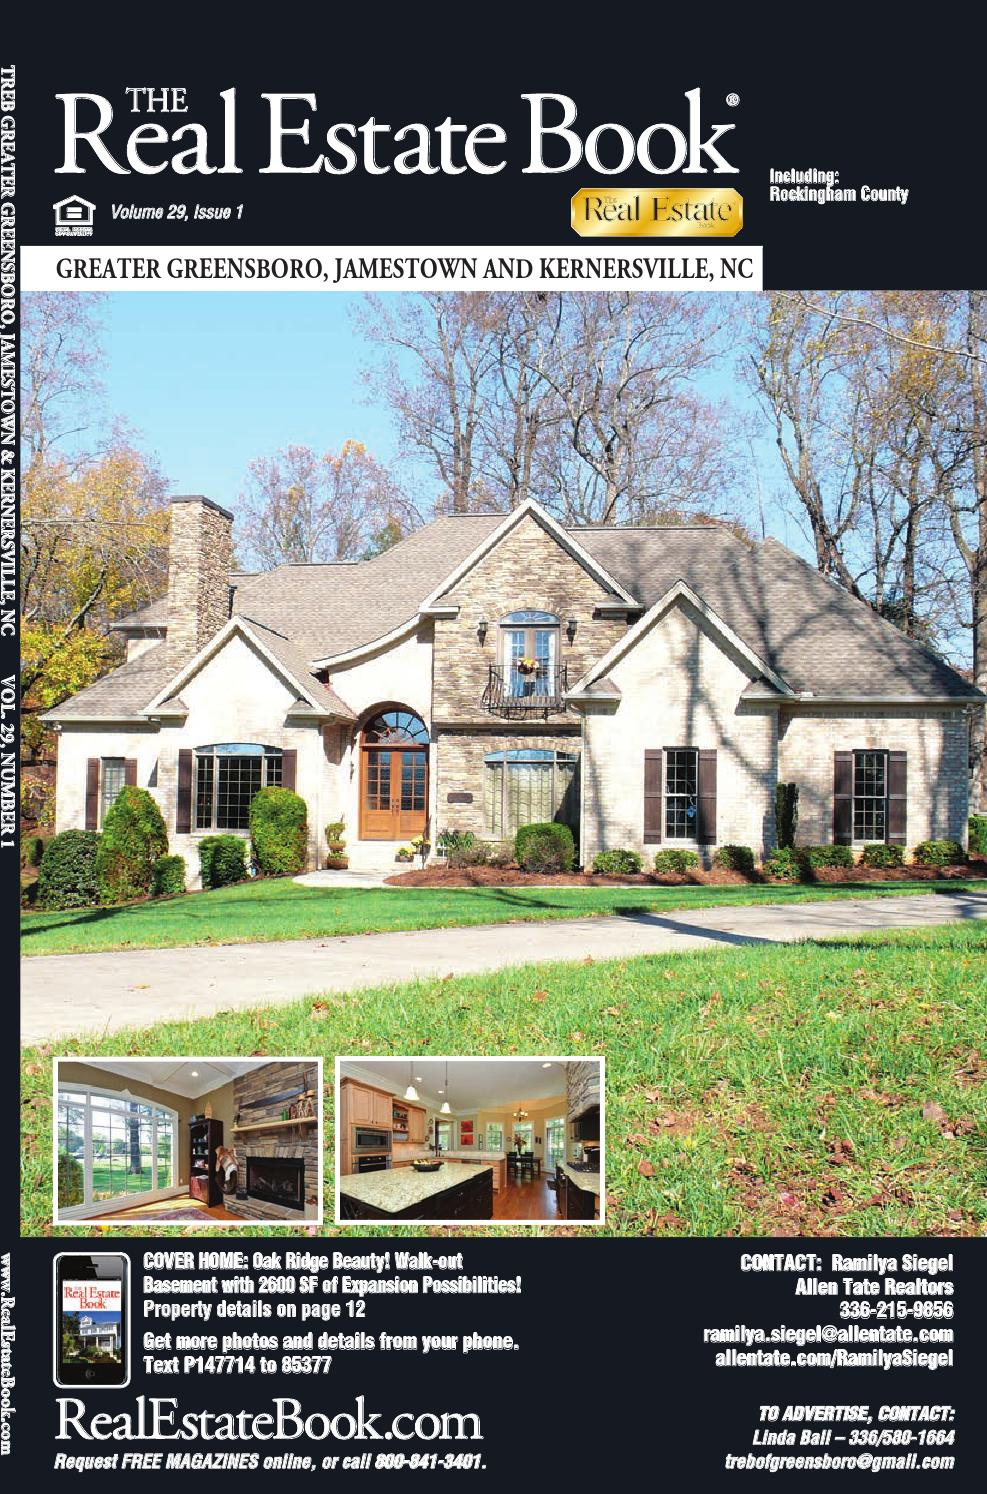 Greater greensboro jamestown and kernersville nc v29n1 for New home construction kernersville nc